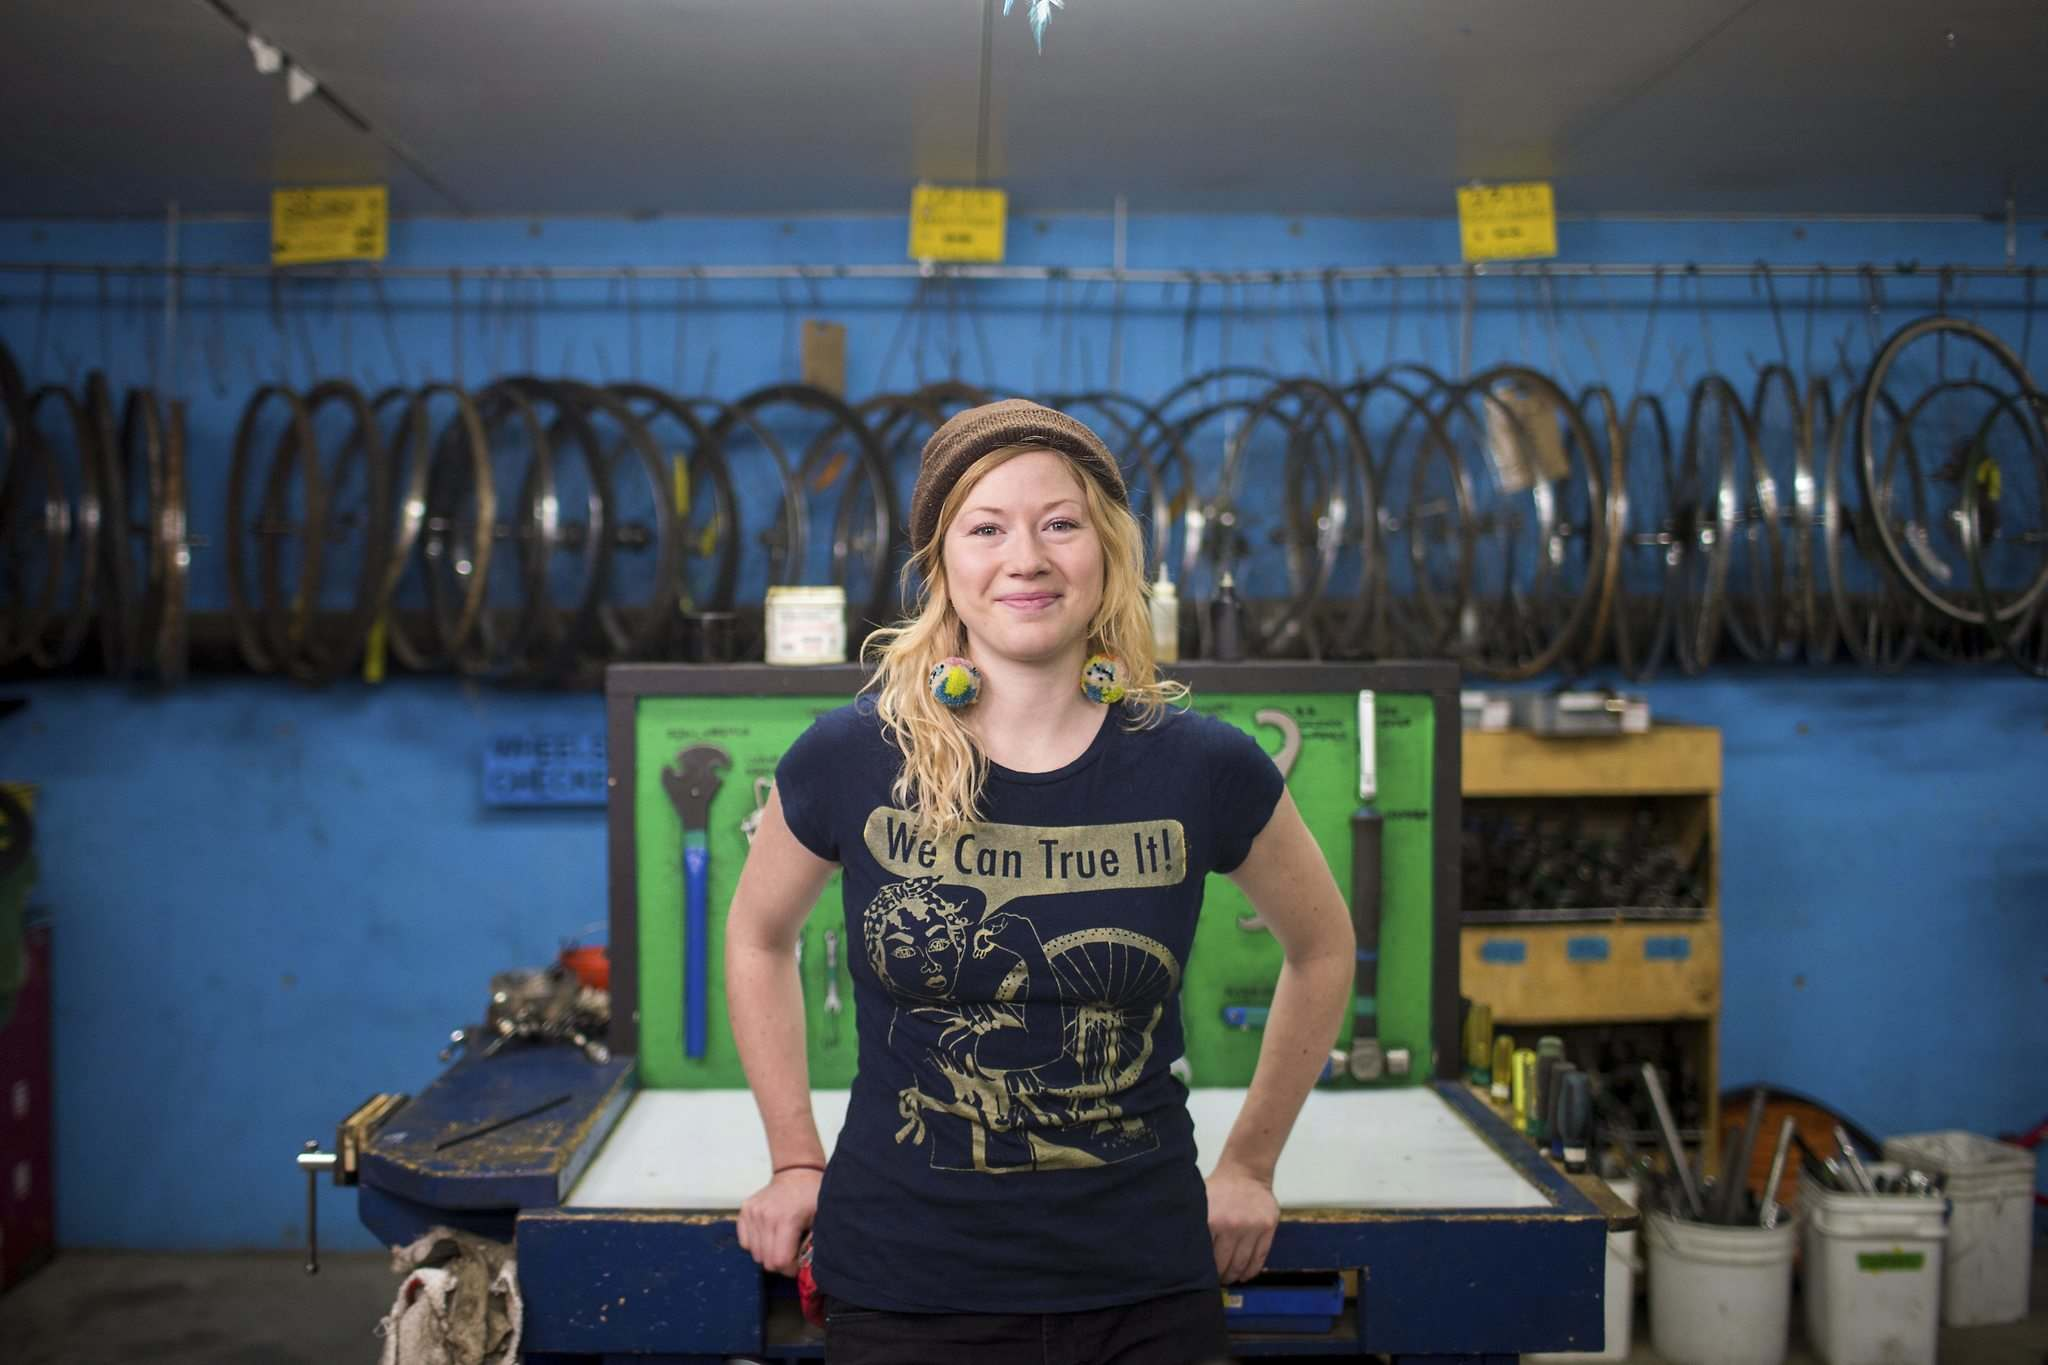 MIKAELA MACKENZIE / WINNIPEG FREE PRESS</p><p>Skill Jill co-ordinator Sarah Thiessen says the free workshops — for carpentry, electrical wiring, auto mechanics, sewing with a machine, arboriculture and audio storytelling — are sold out and there is a waiting list.</p>